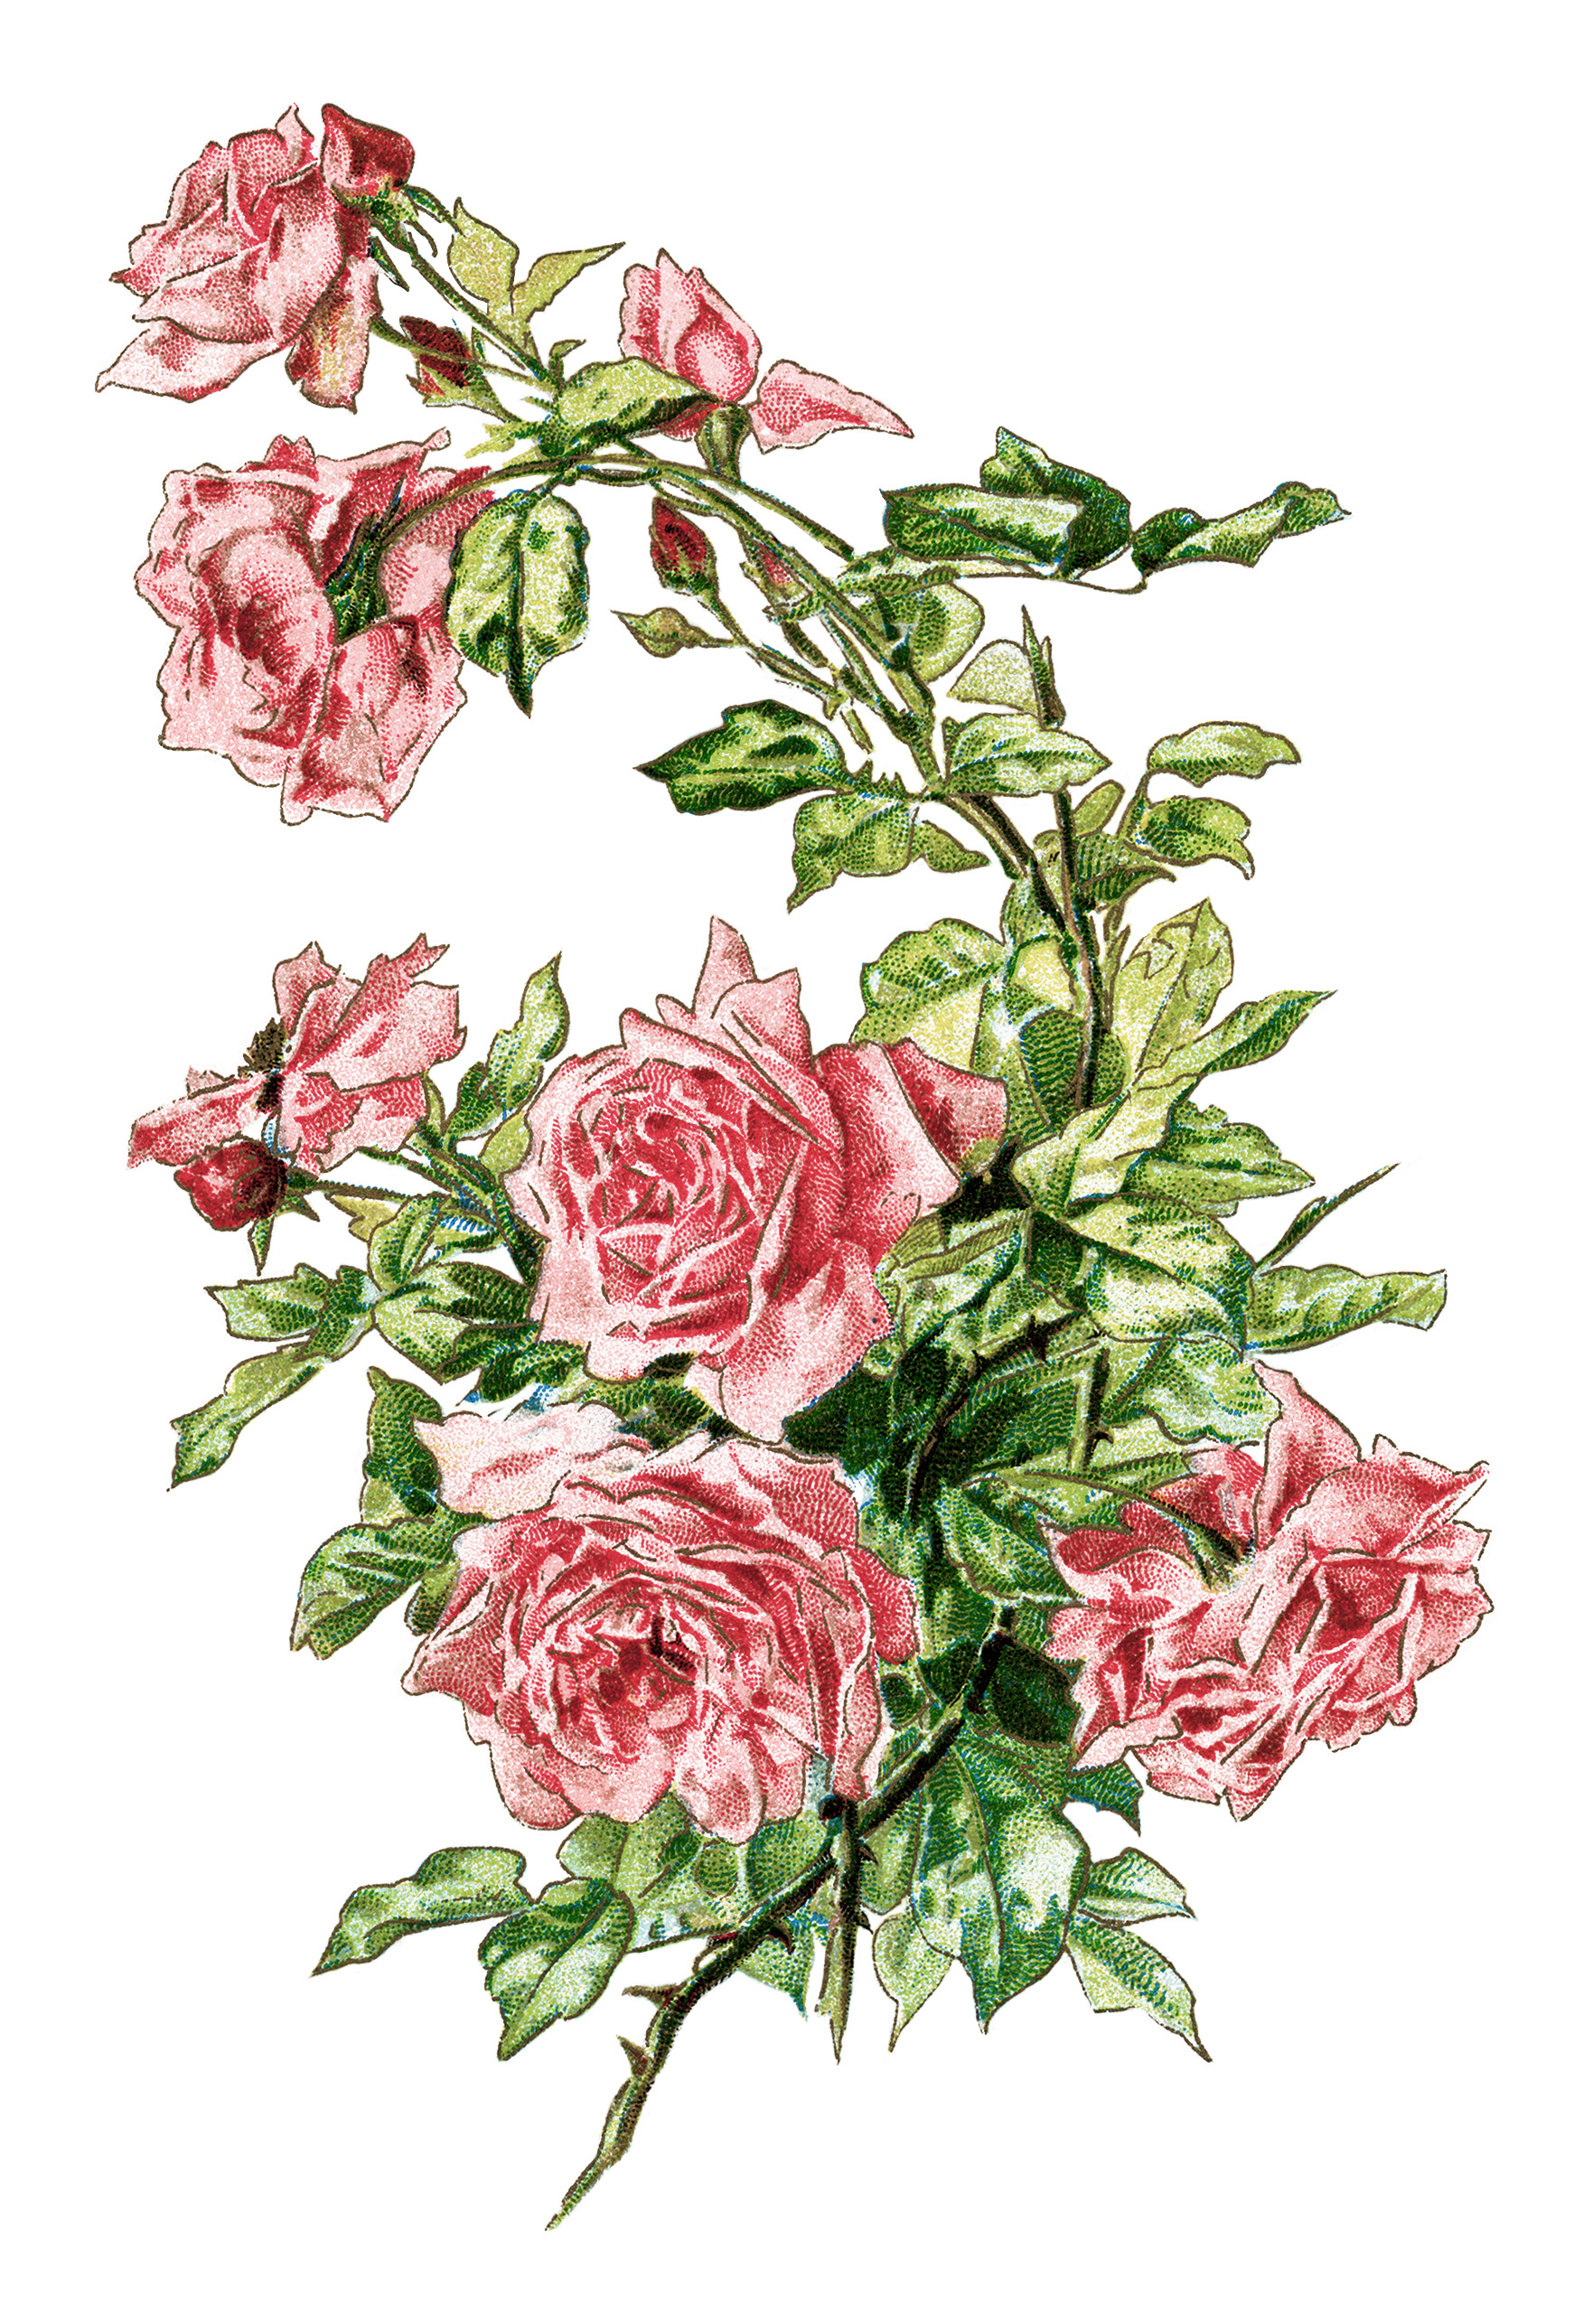 vintage clip art rose, pink roses illustration, antique flowers digital image, old roses clipart, printable graphics roses